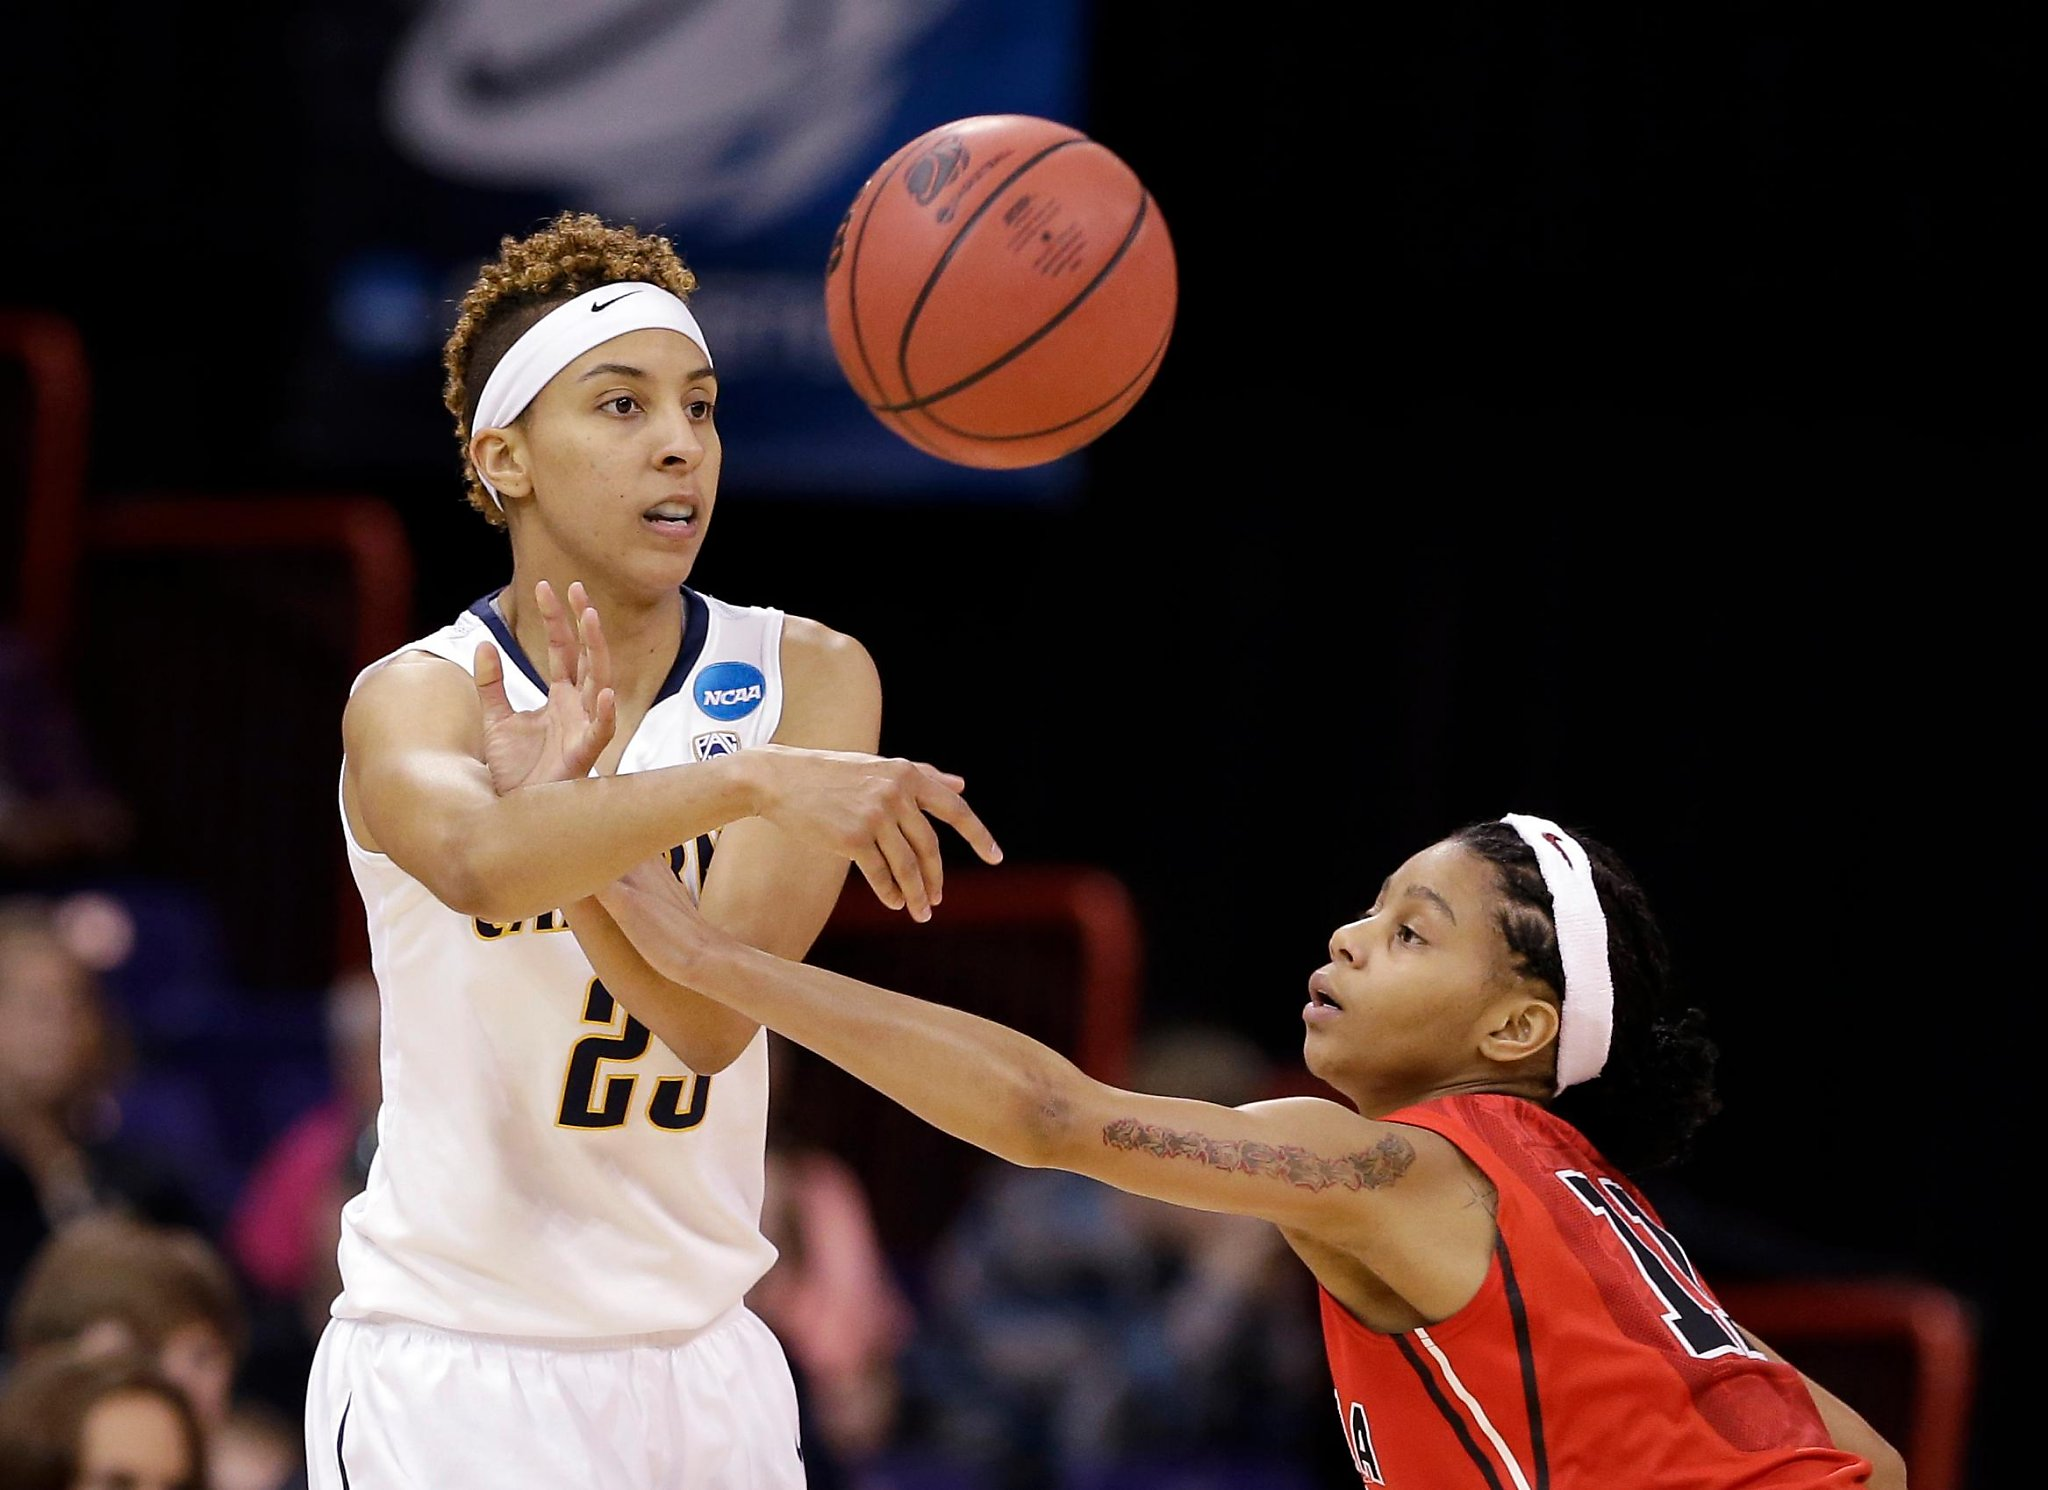 Ex-Cal player Layshia Clarendon alleges sexual assault by university